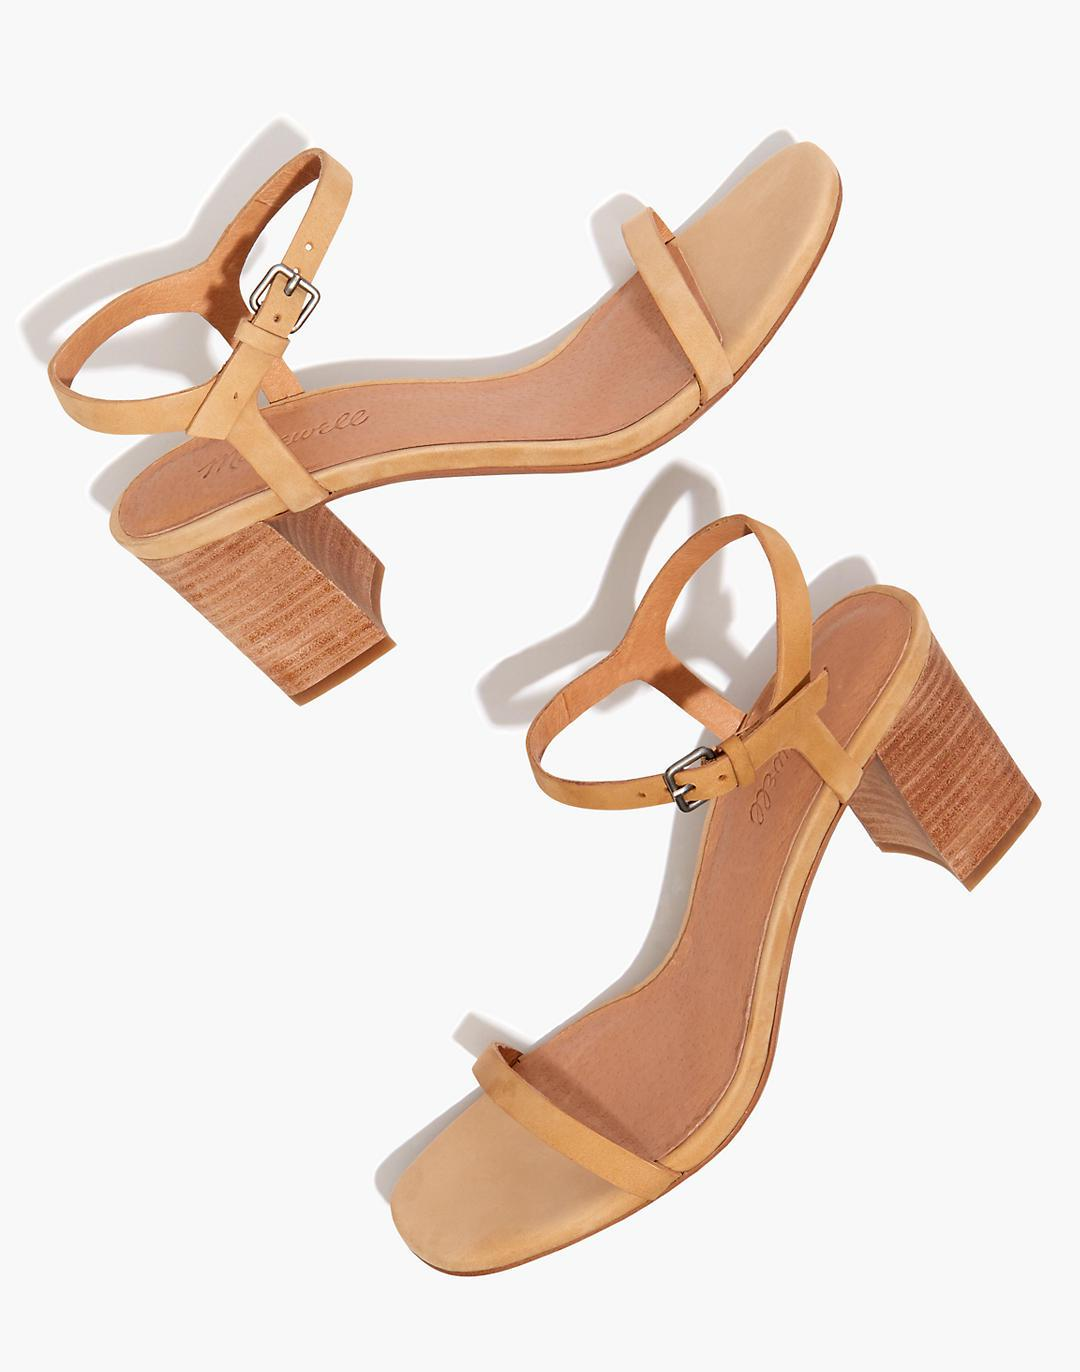 The Hollie Ankle-Strap Sandal in Nubuck Leather